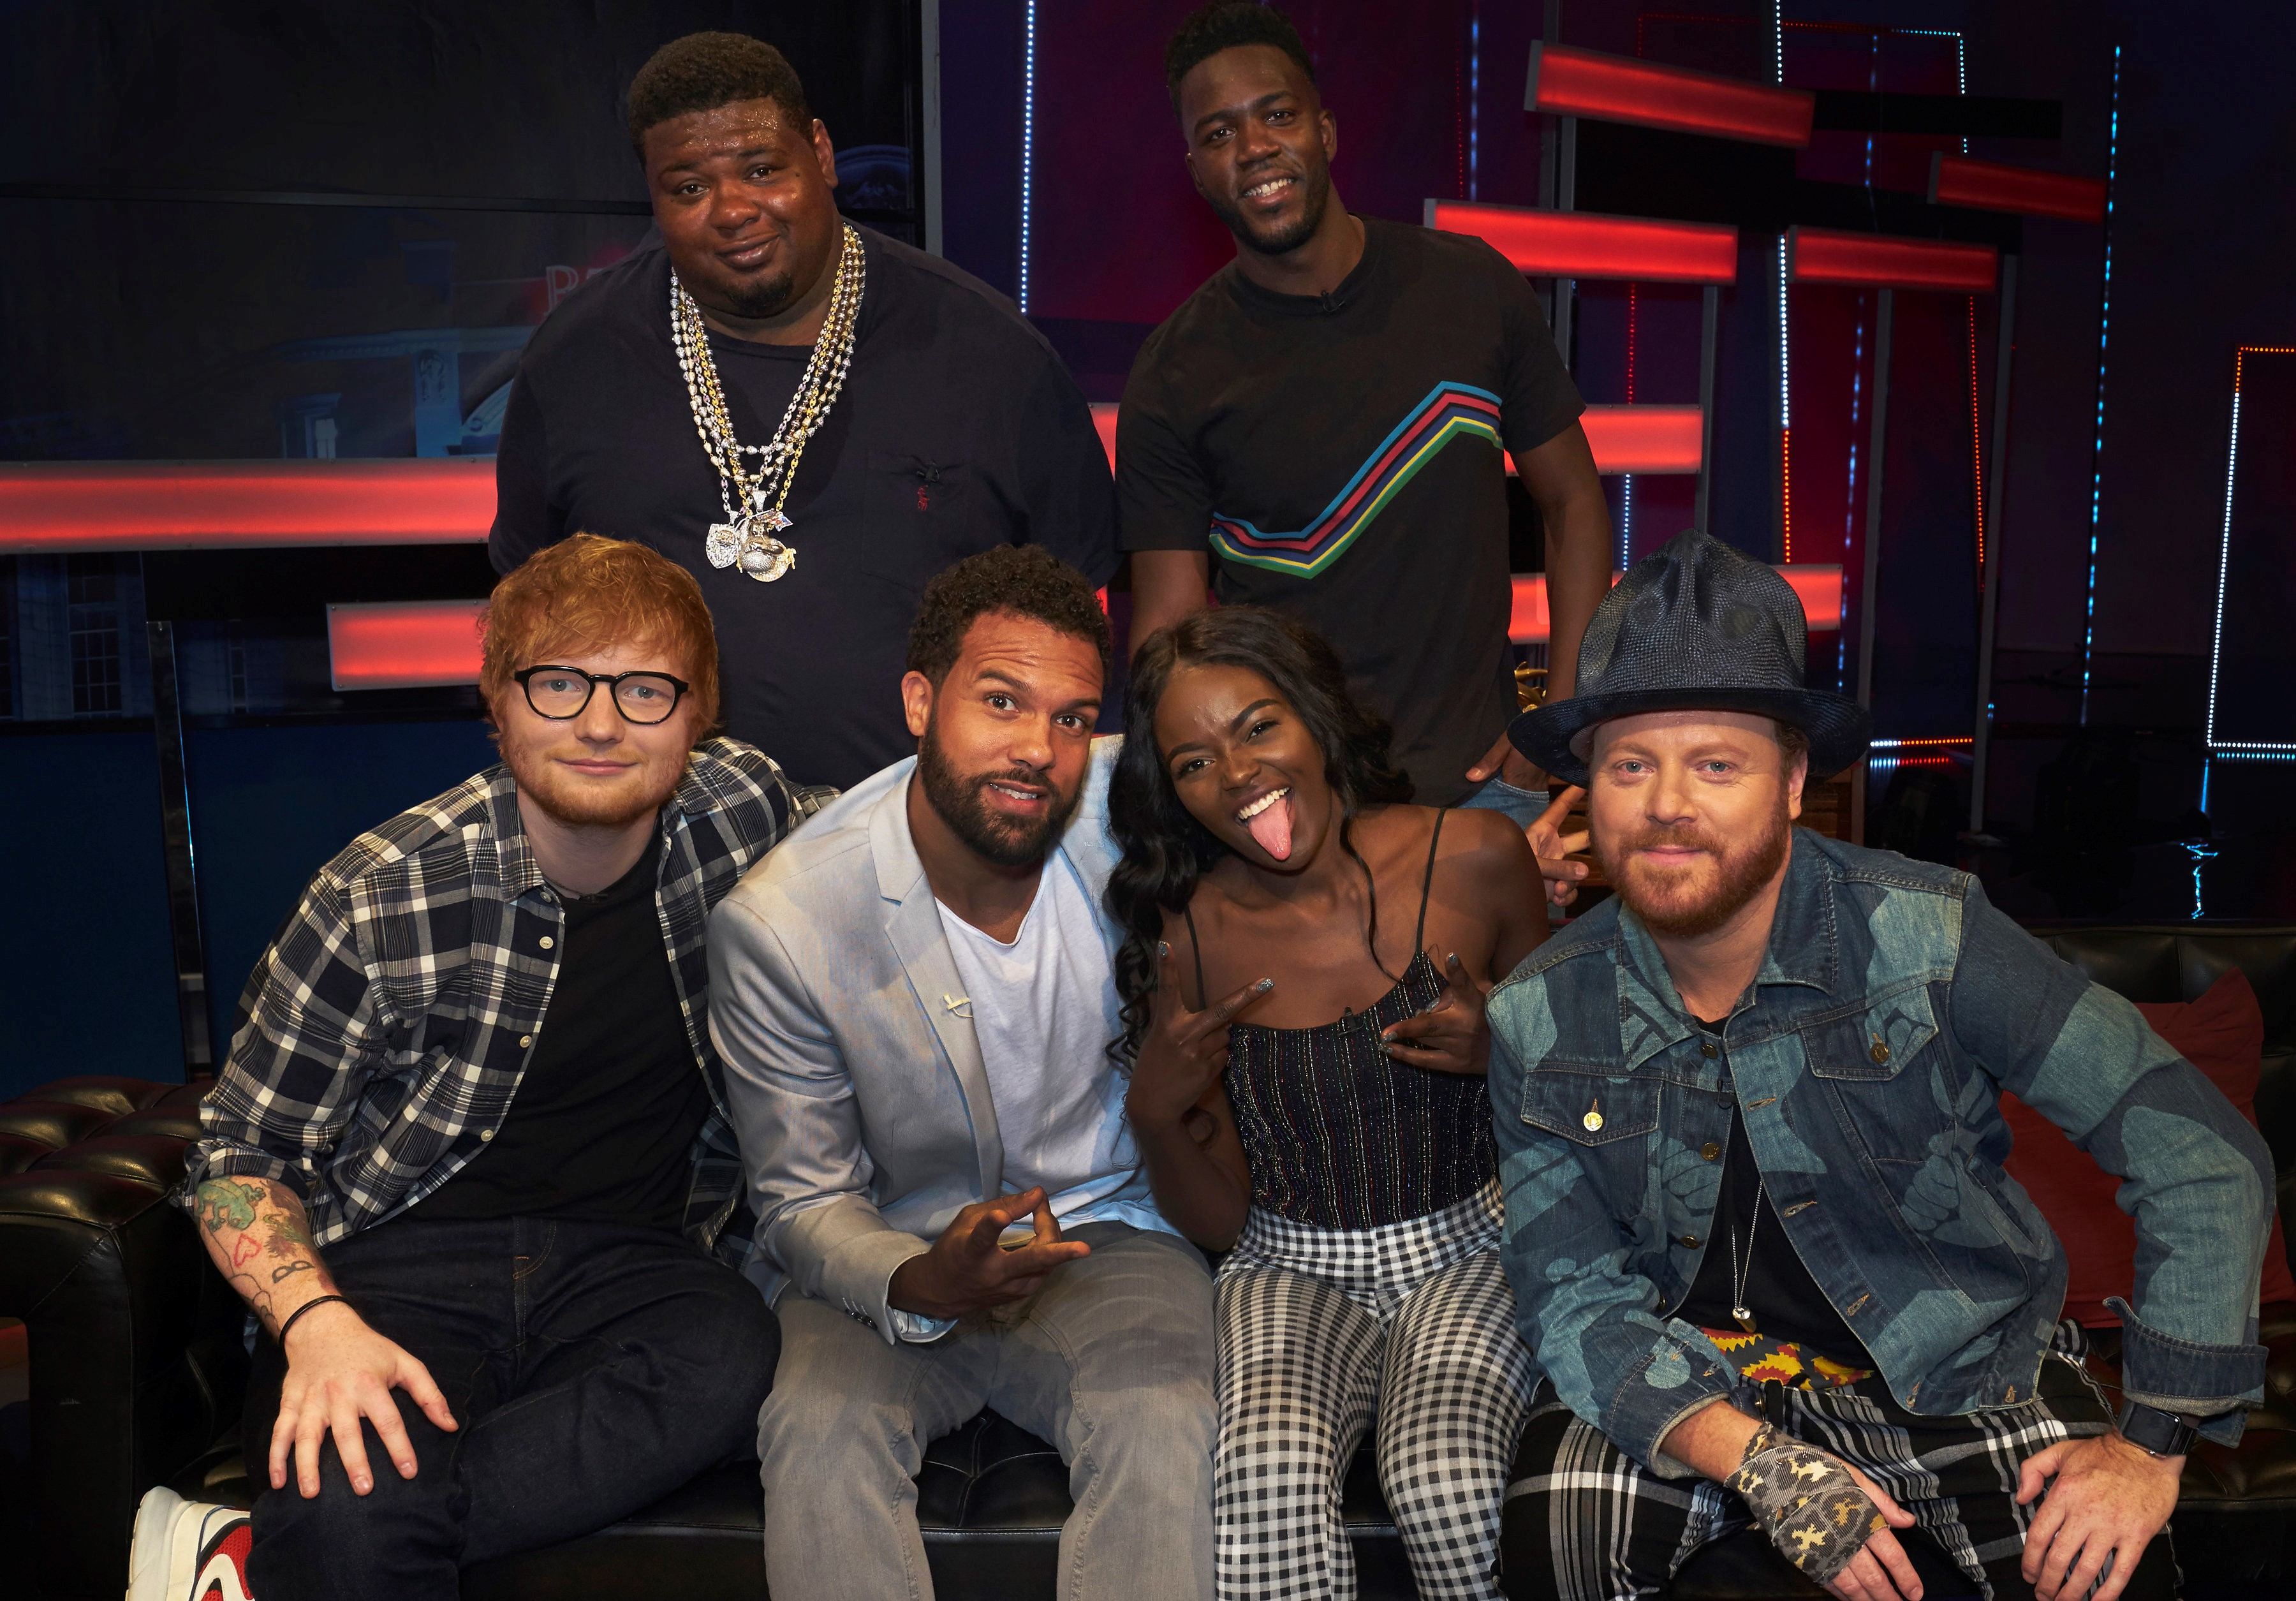 Ed Sheeran, O.T. Fagbenle, Sherrie Silver and Keith Lemon on The Big Narstie Show with hosts Big Narstie and Mo Gilligan